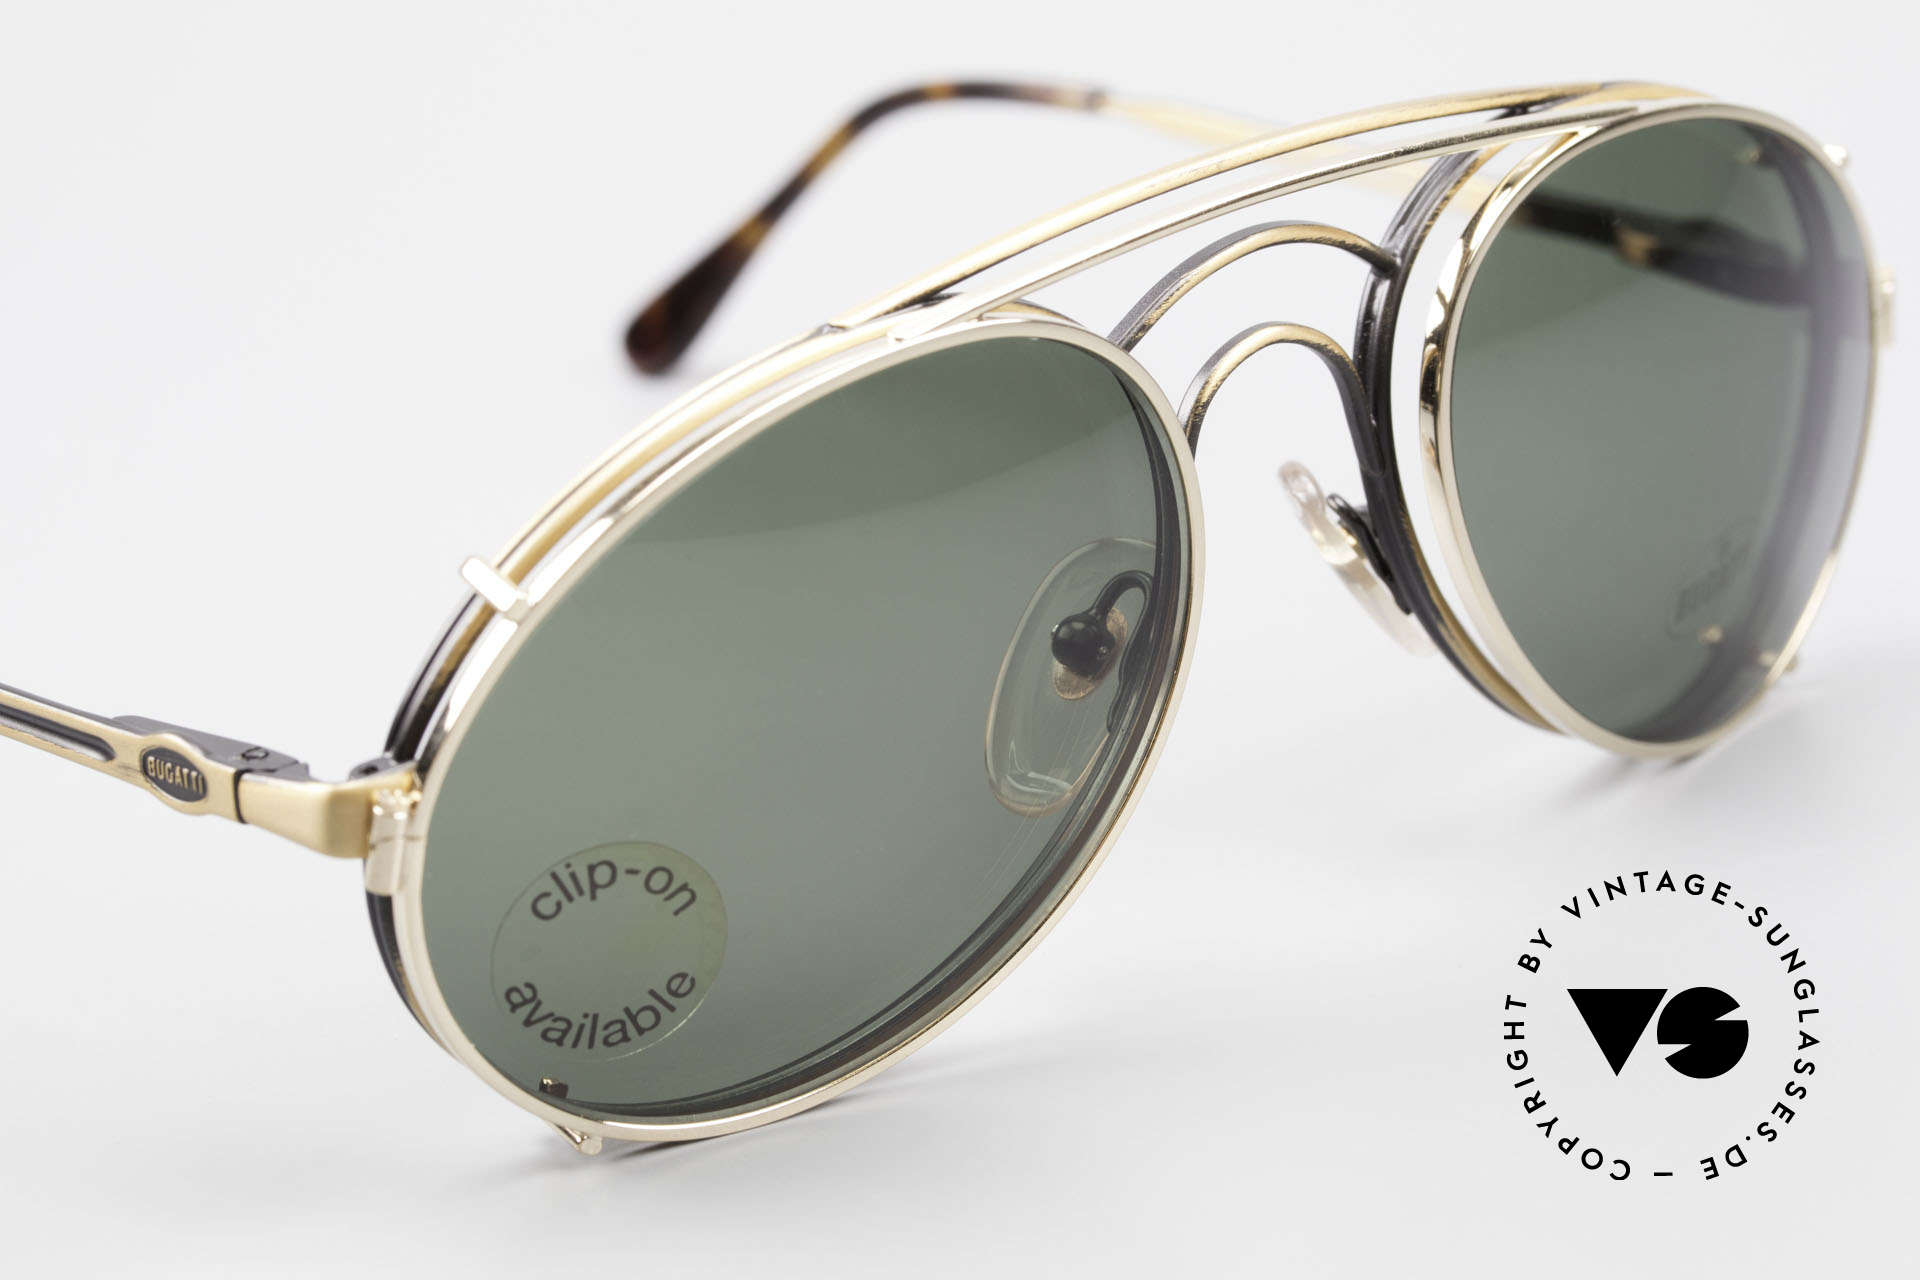 Bugatti 07823 Old 80's Glasses With Clip On, unworn (like all our vintage Bugatti designer shades), Made for Men